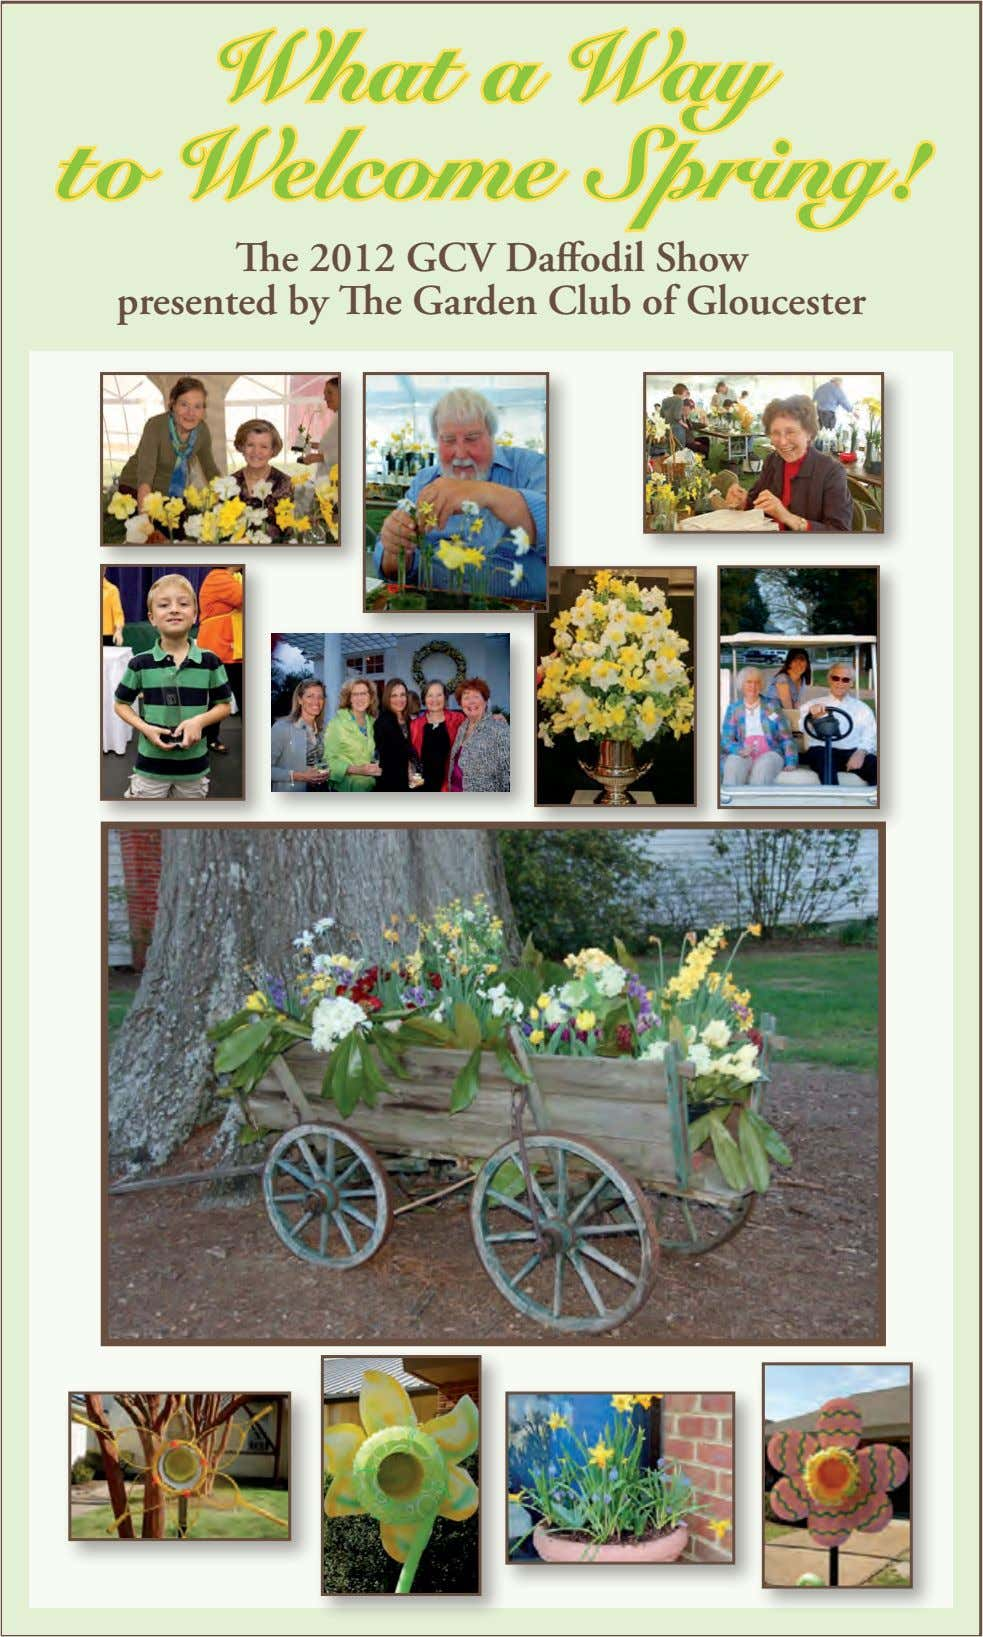 What a Way to Welcome Spring! The 2012 GCV Daffodil Show presented by The Garden Club